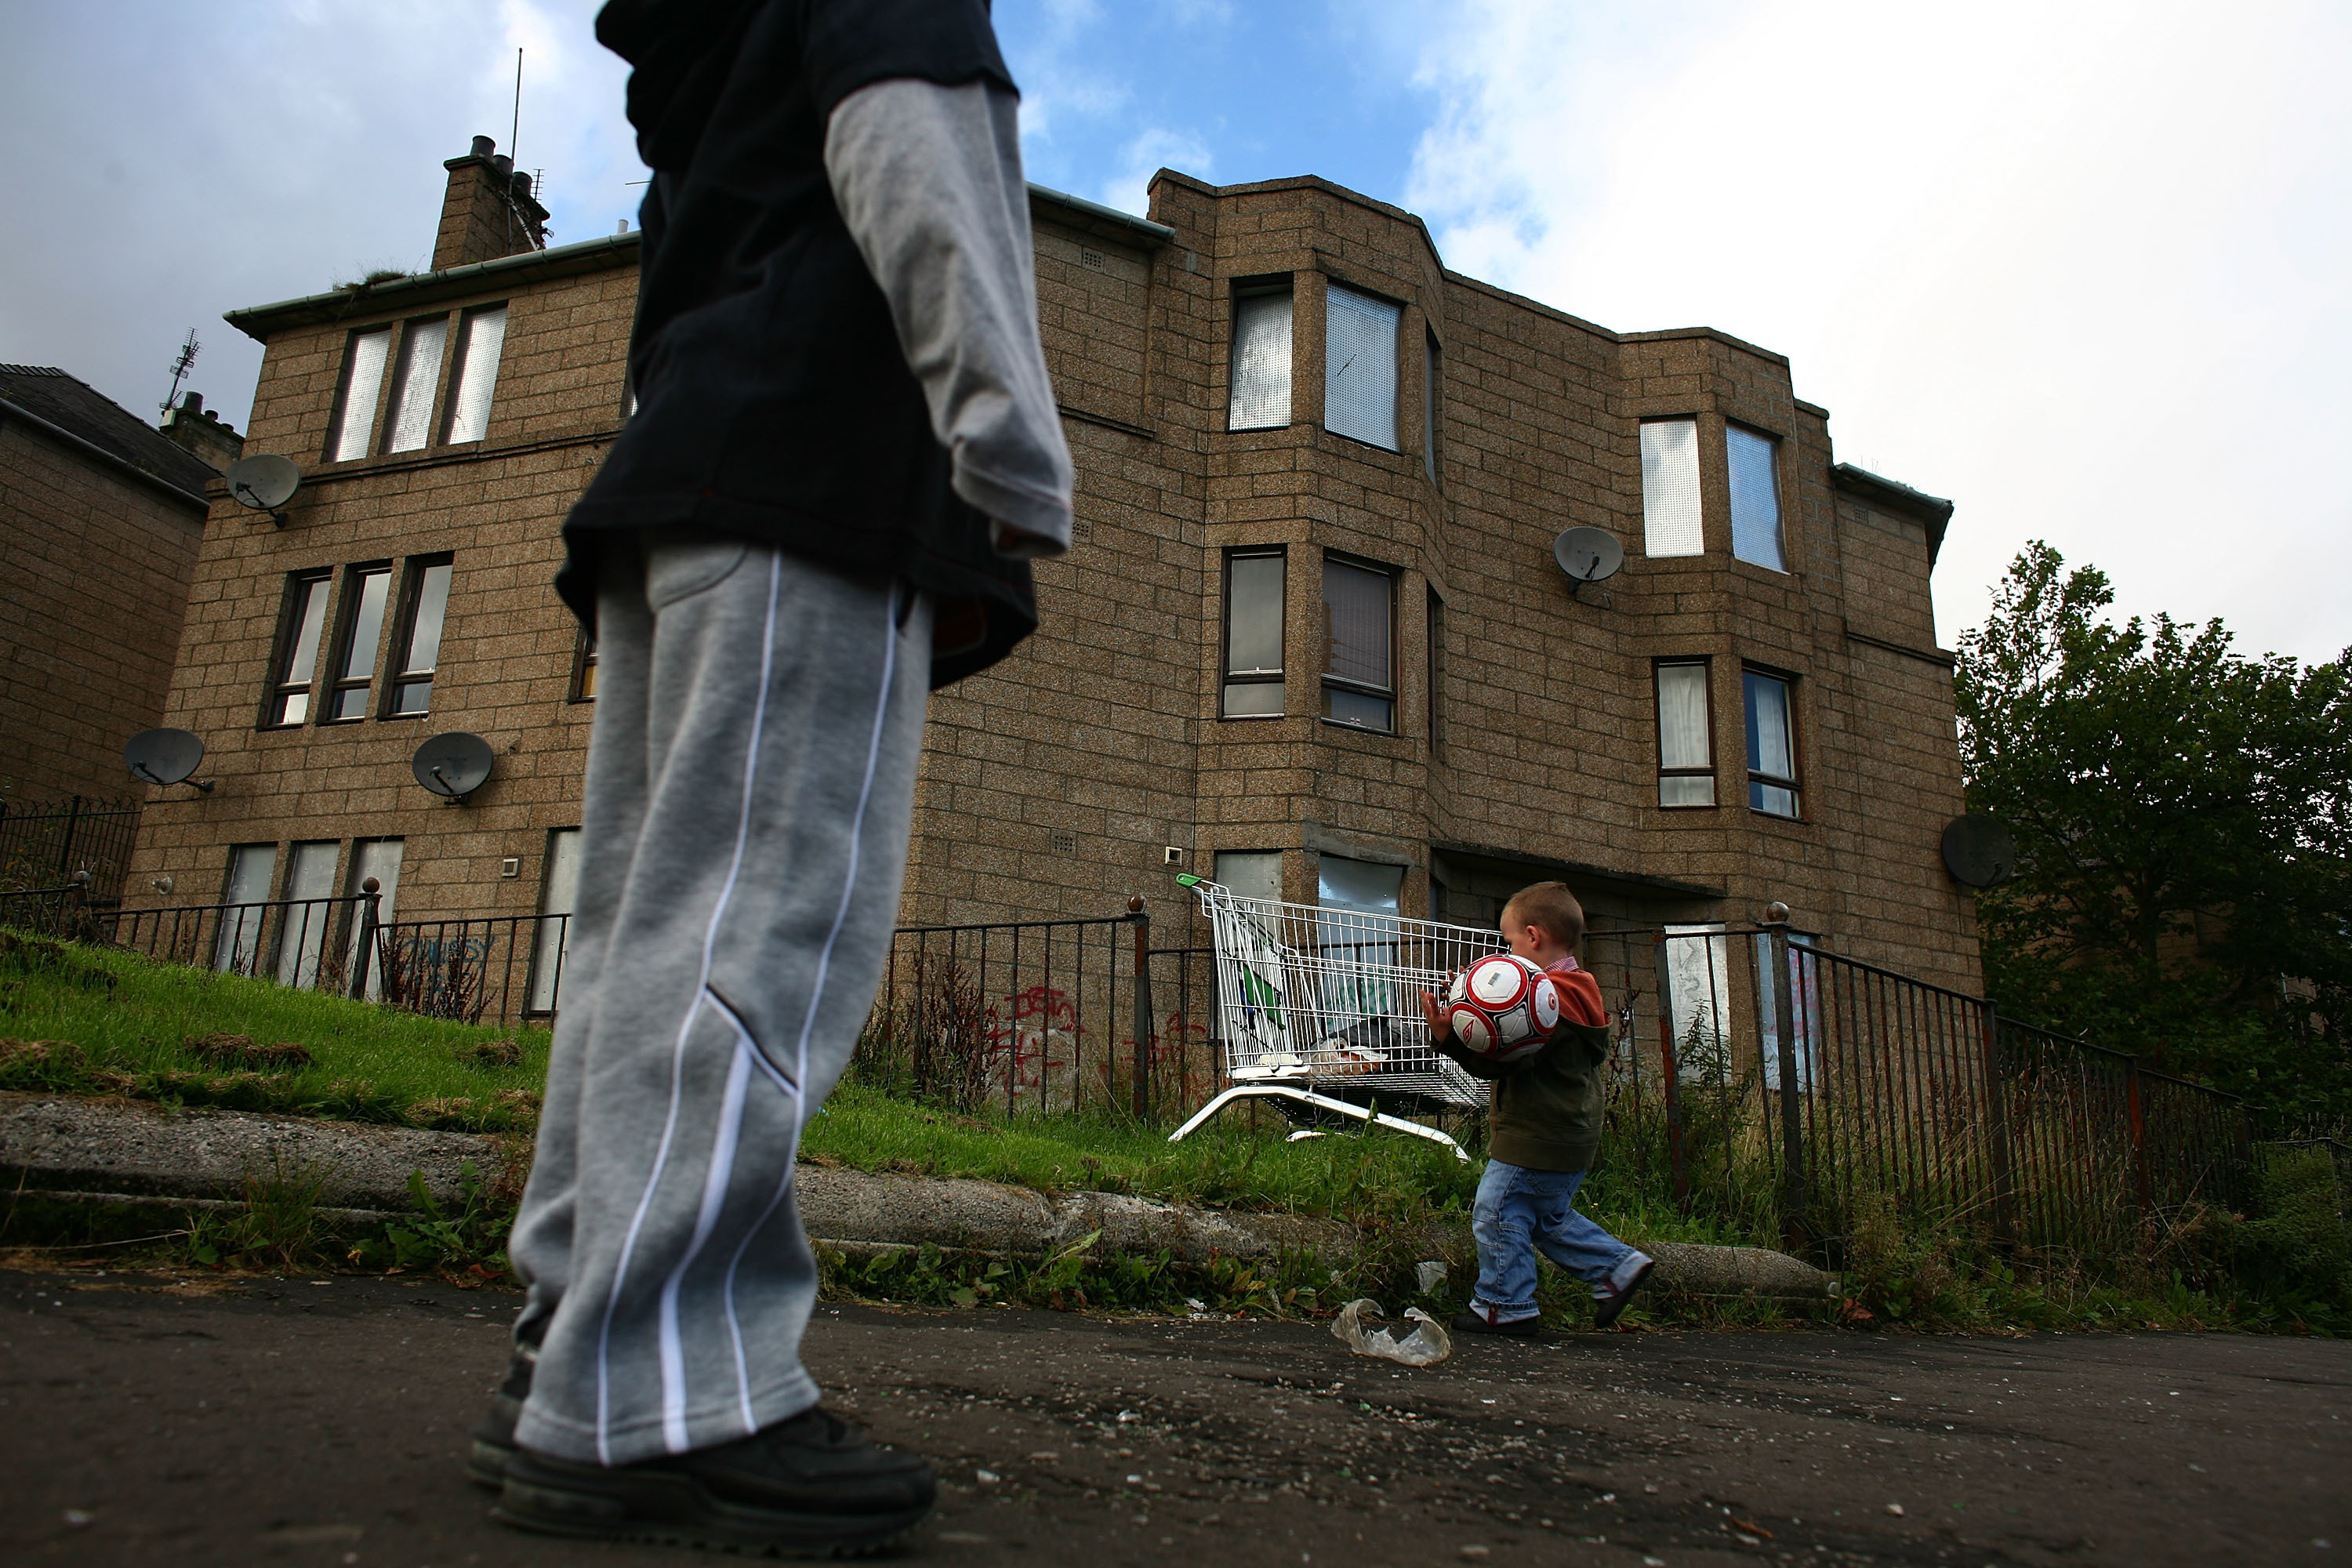 Figures show the gap between rich and poor is growing.